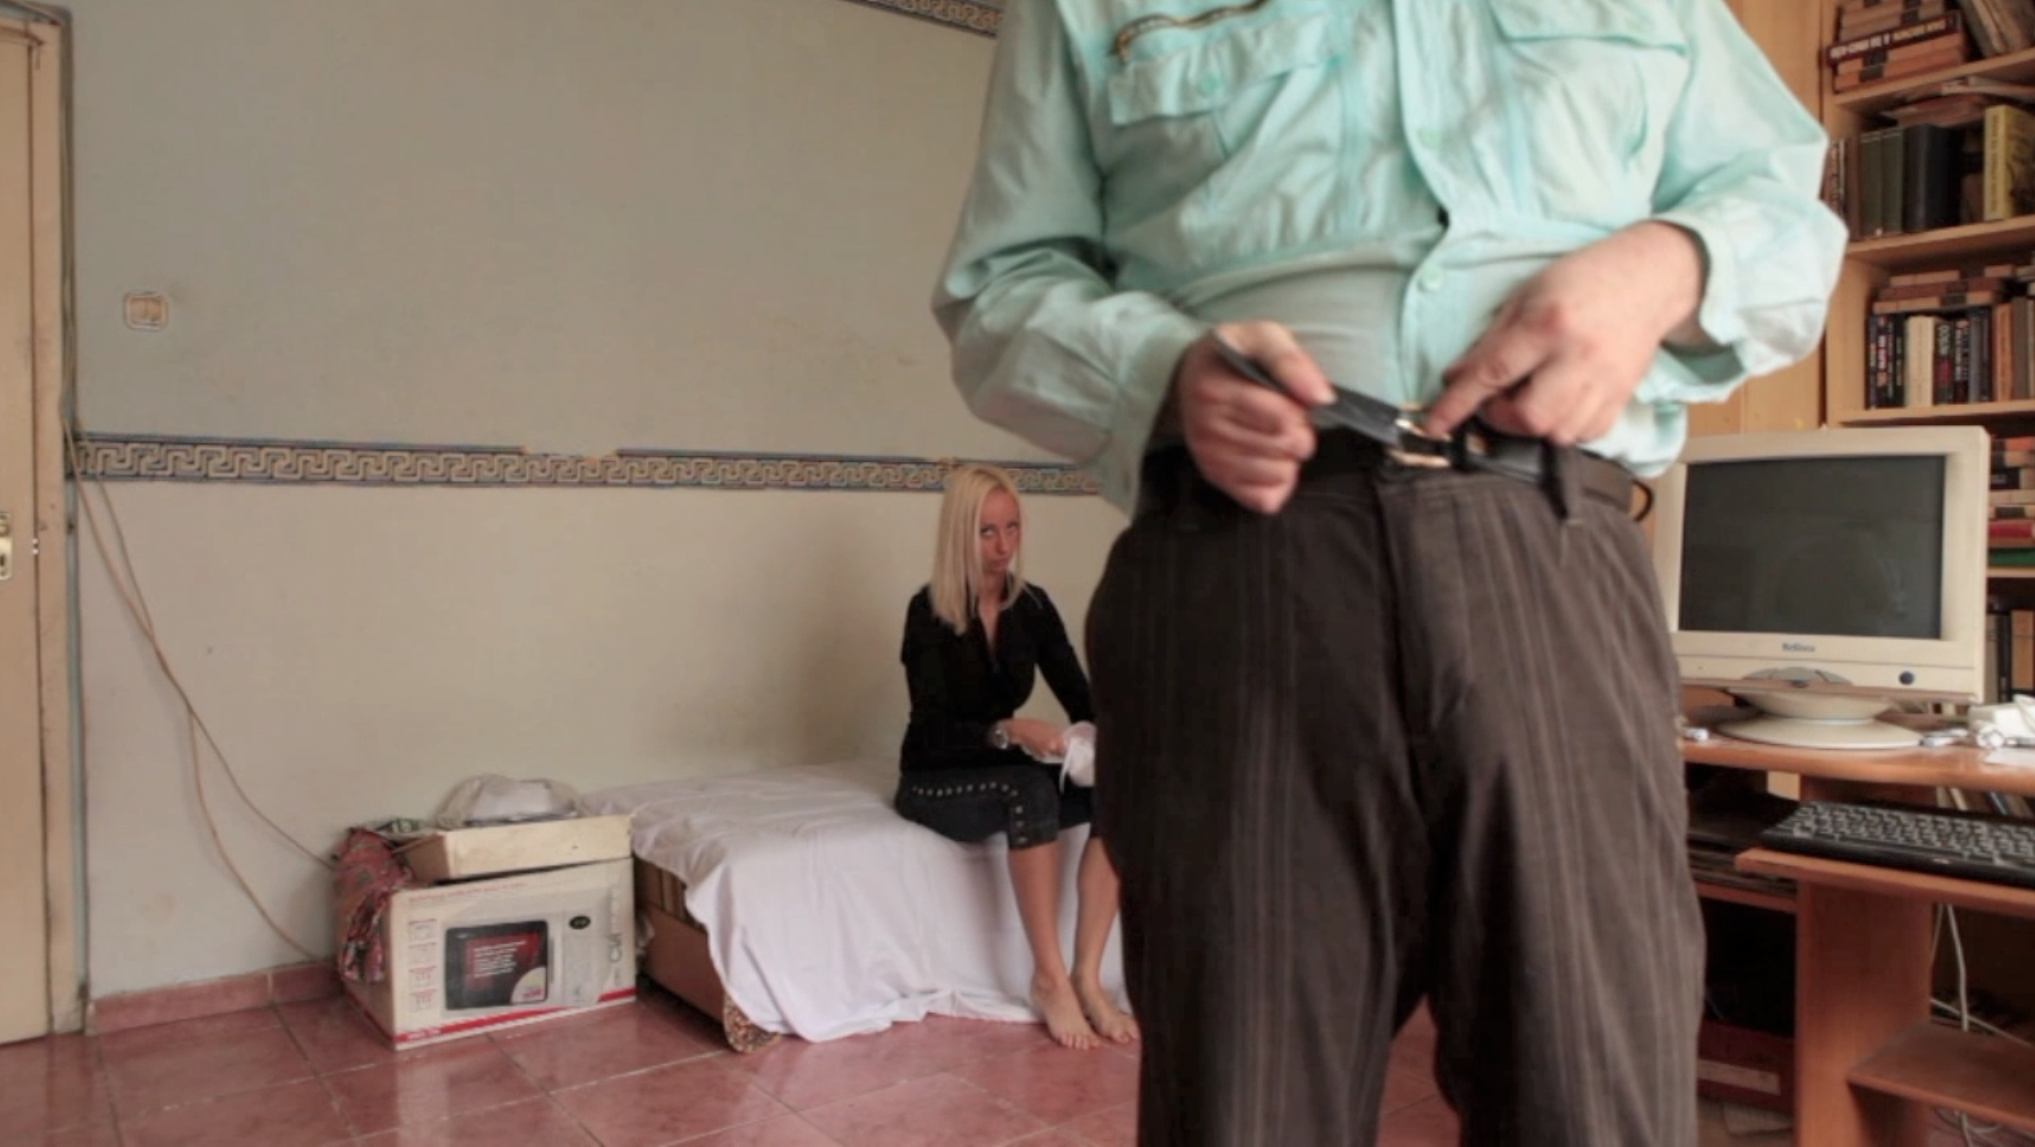 Scene from the video VII.